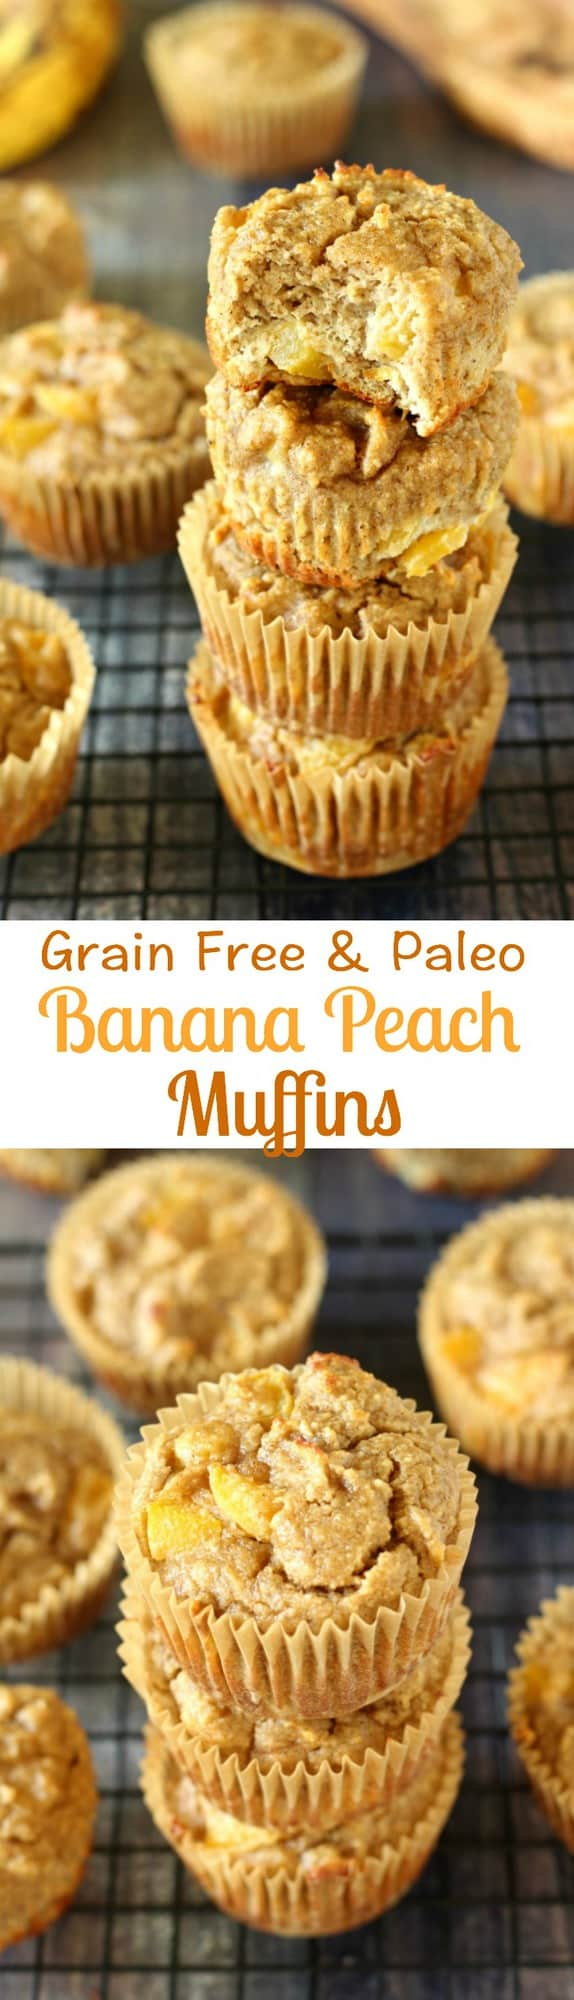 grain free and paleo banana peach muffins - healthy and bursting with sweet banana peach flavor - healthy paleo muffins for breakfast or snack